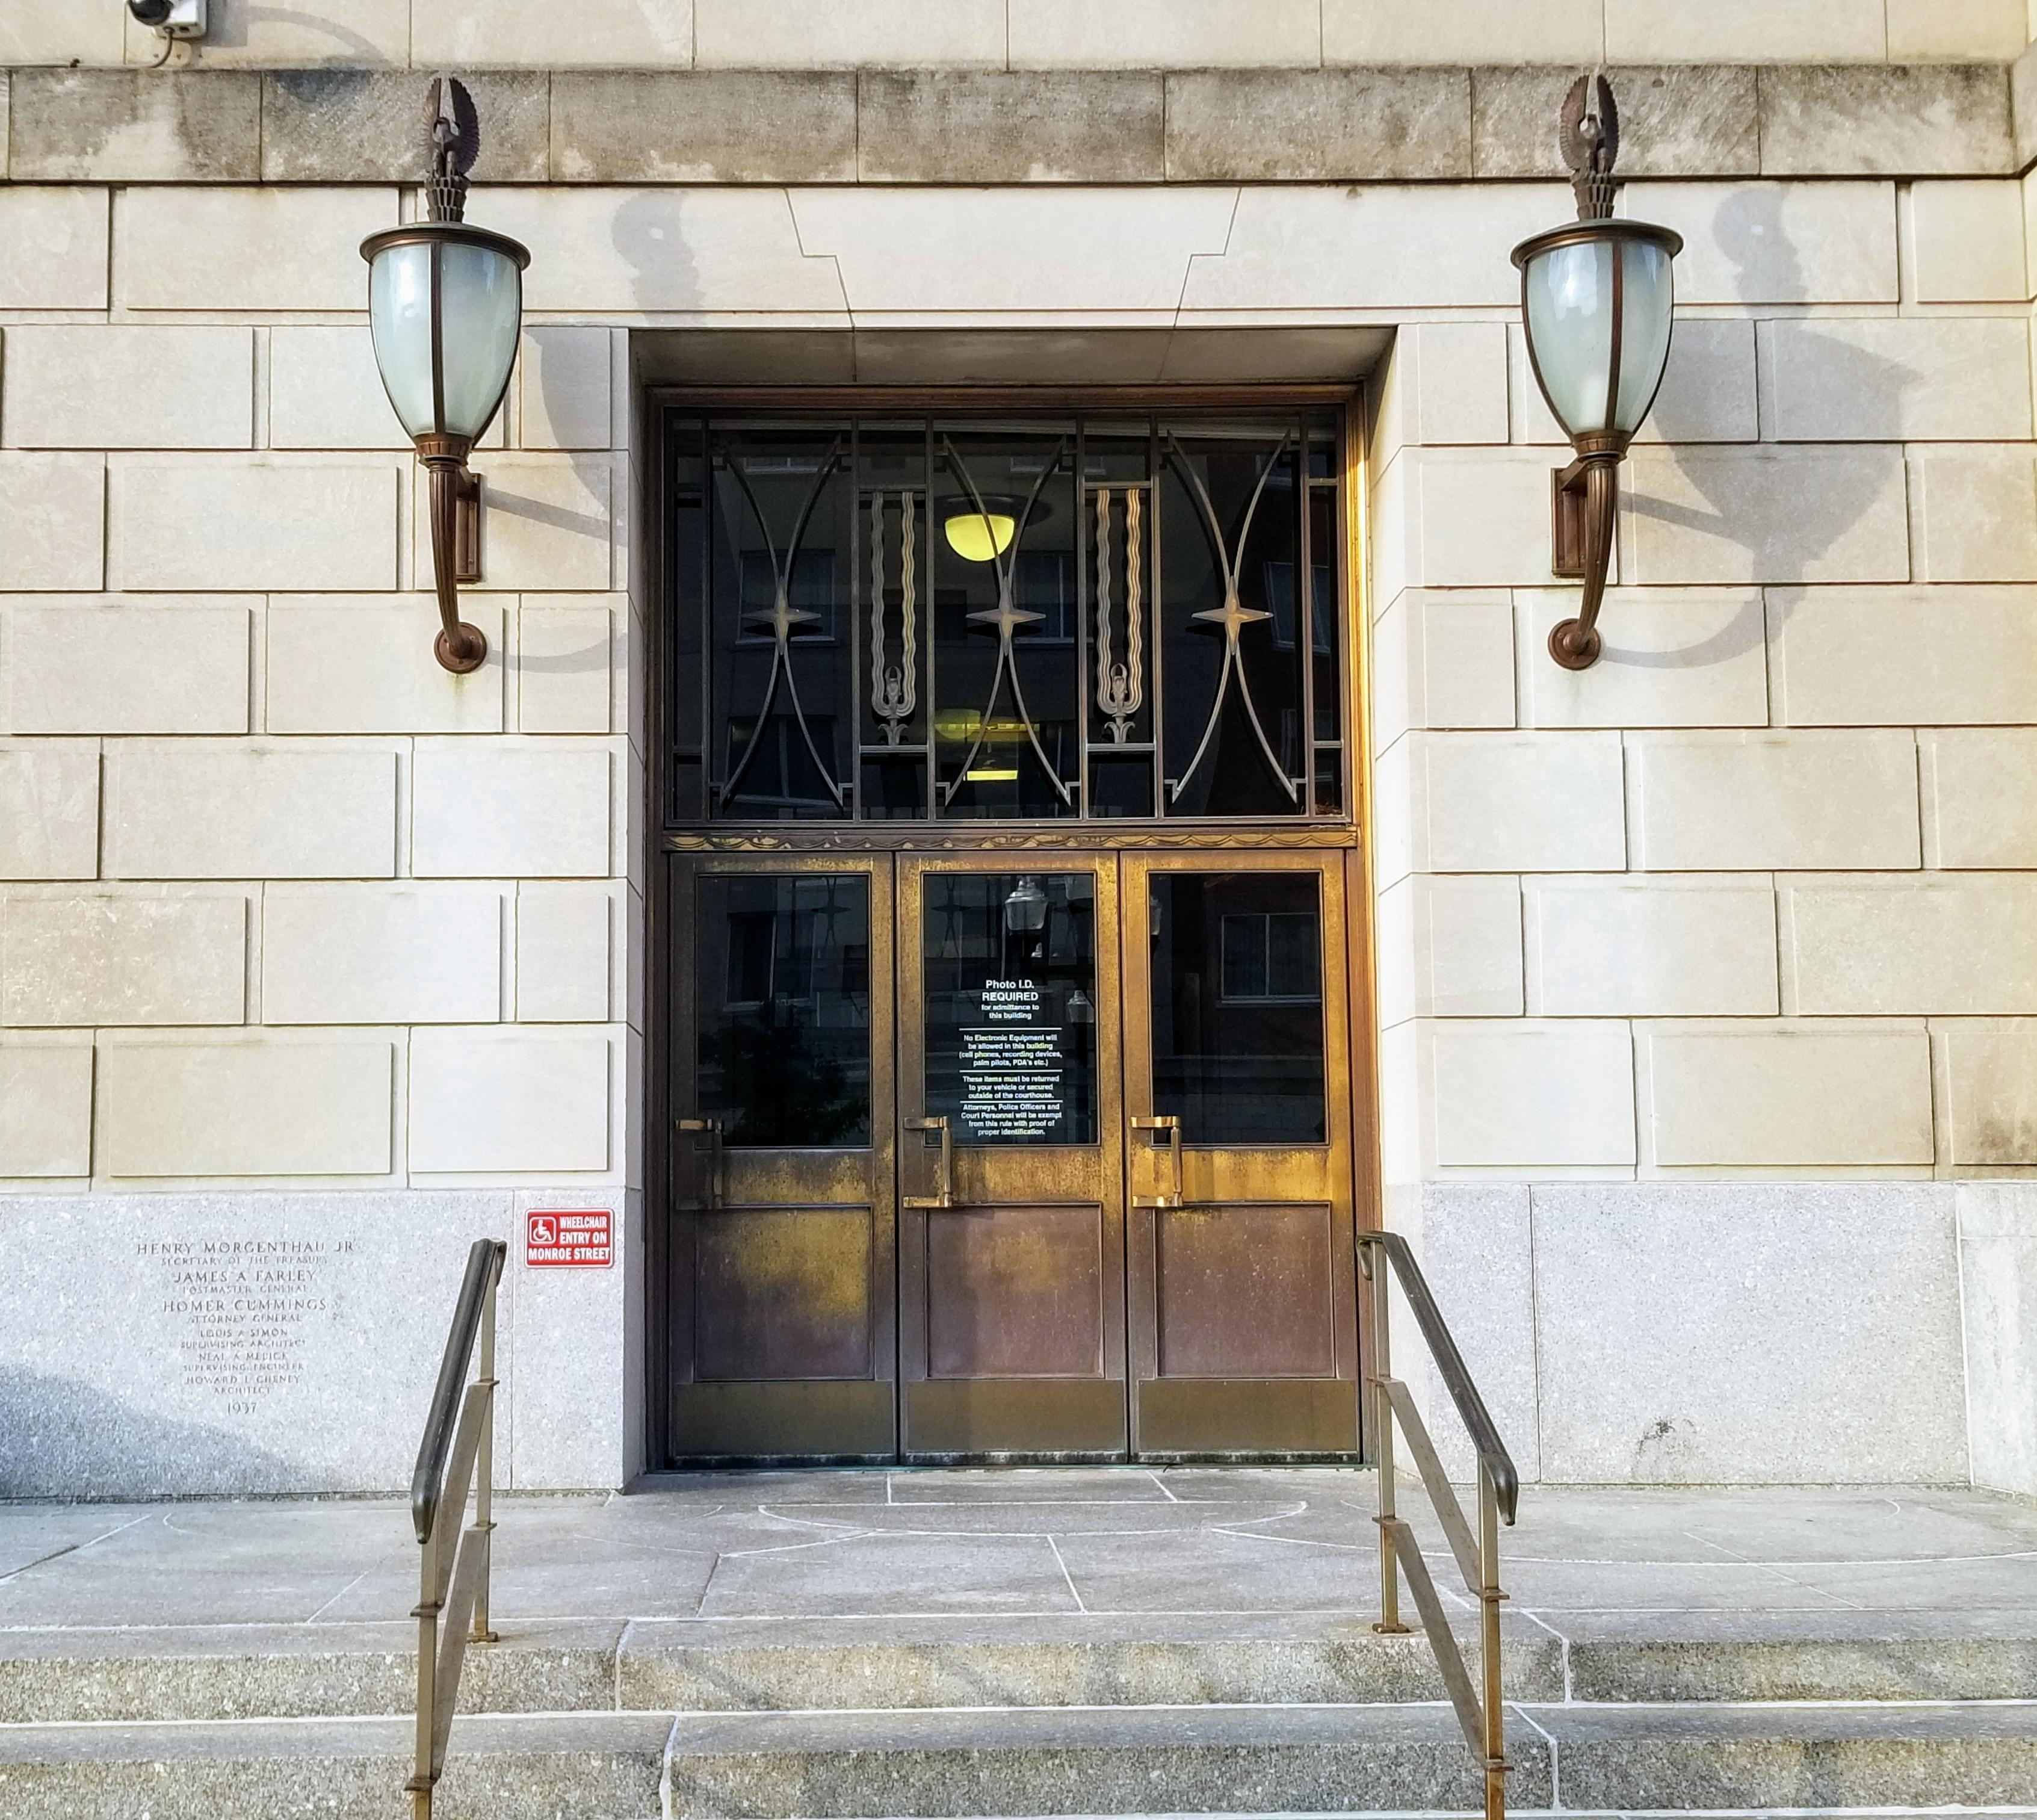 Entrance to U.S. Federal Building and Courthouse, Peoria.